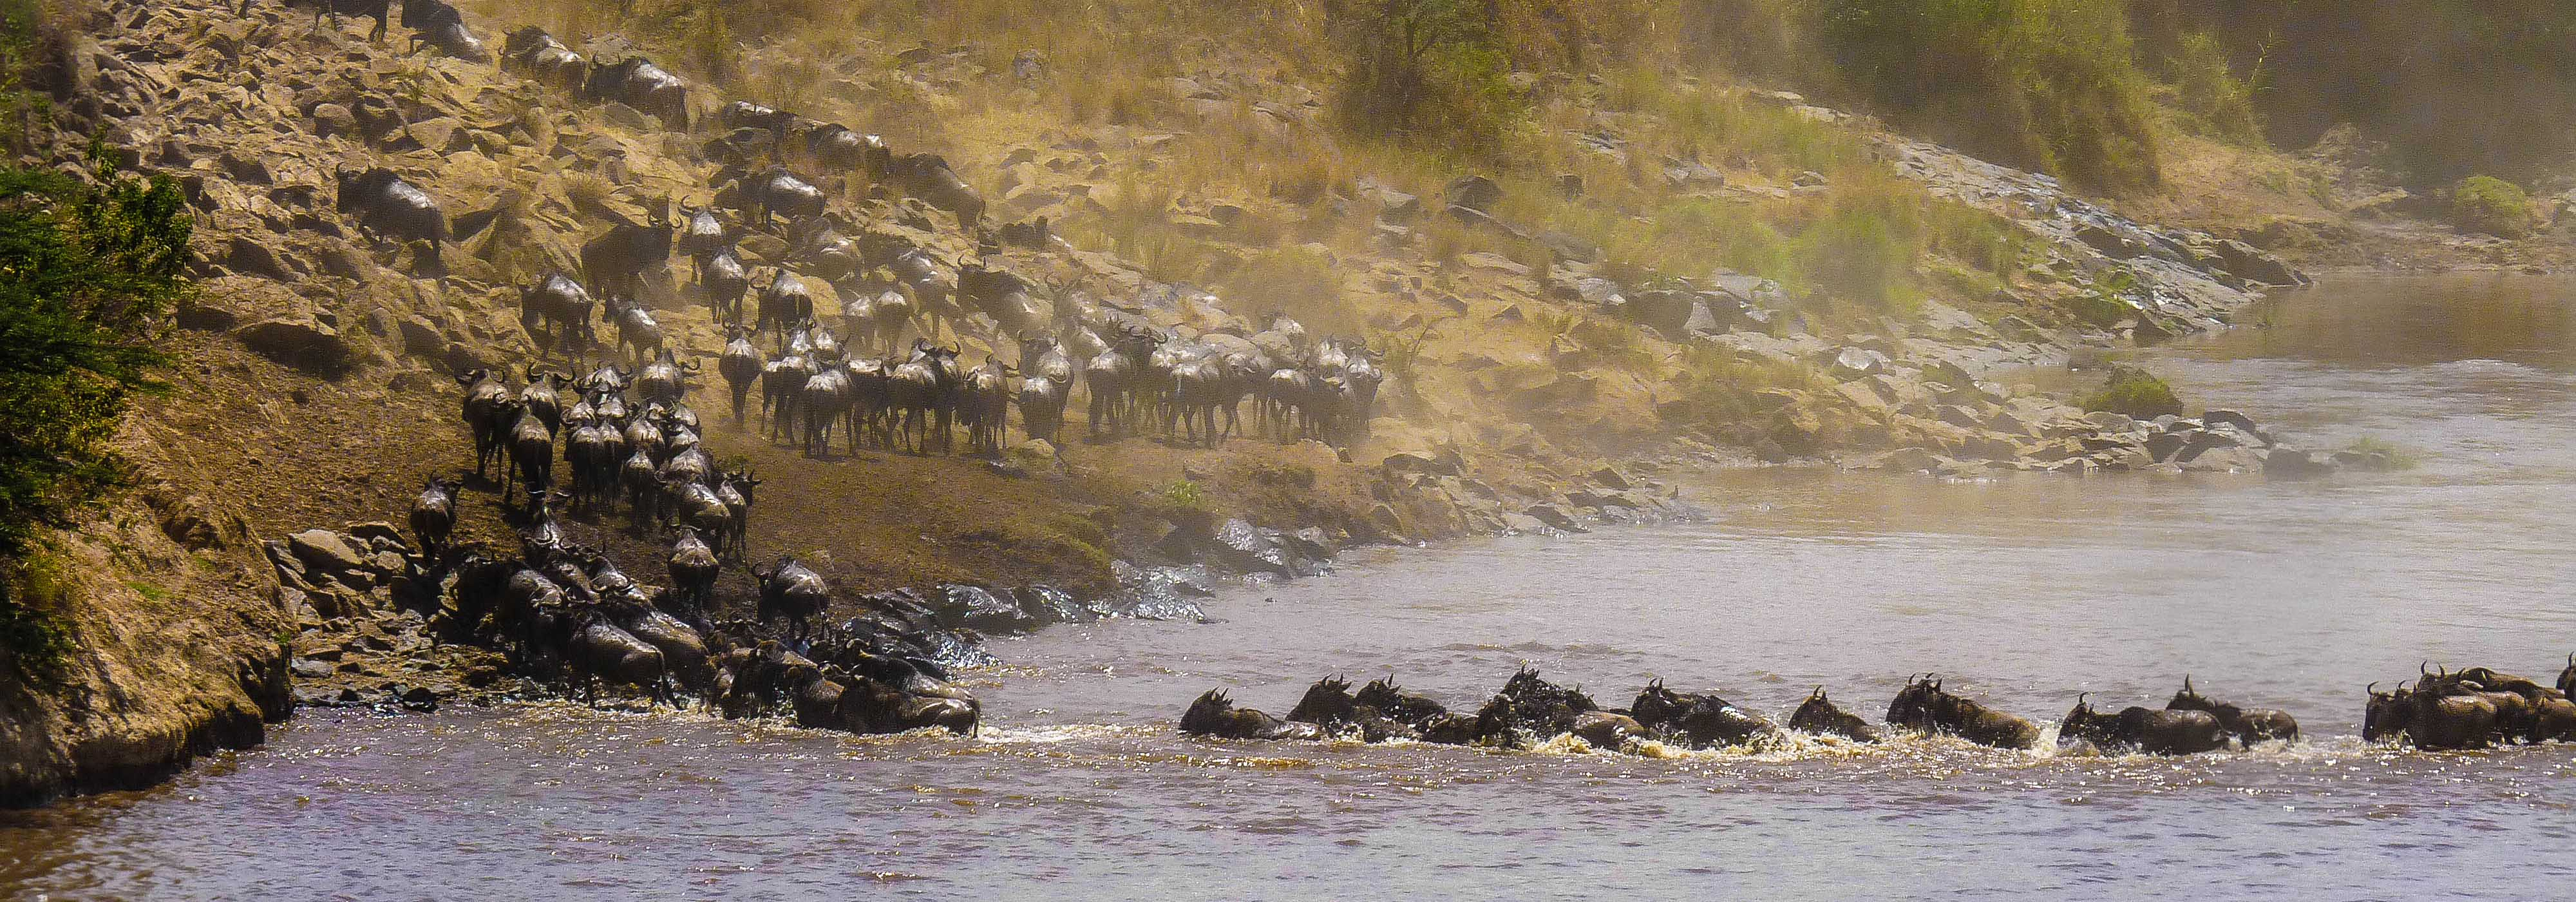 Wildebeest crossing the river